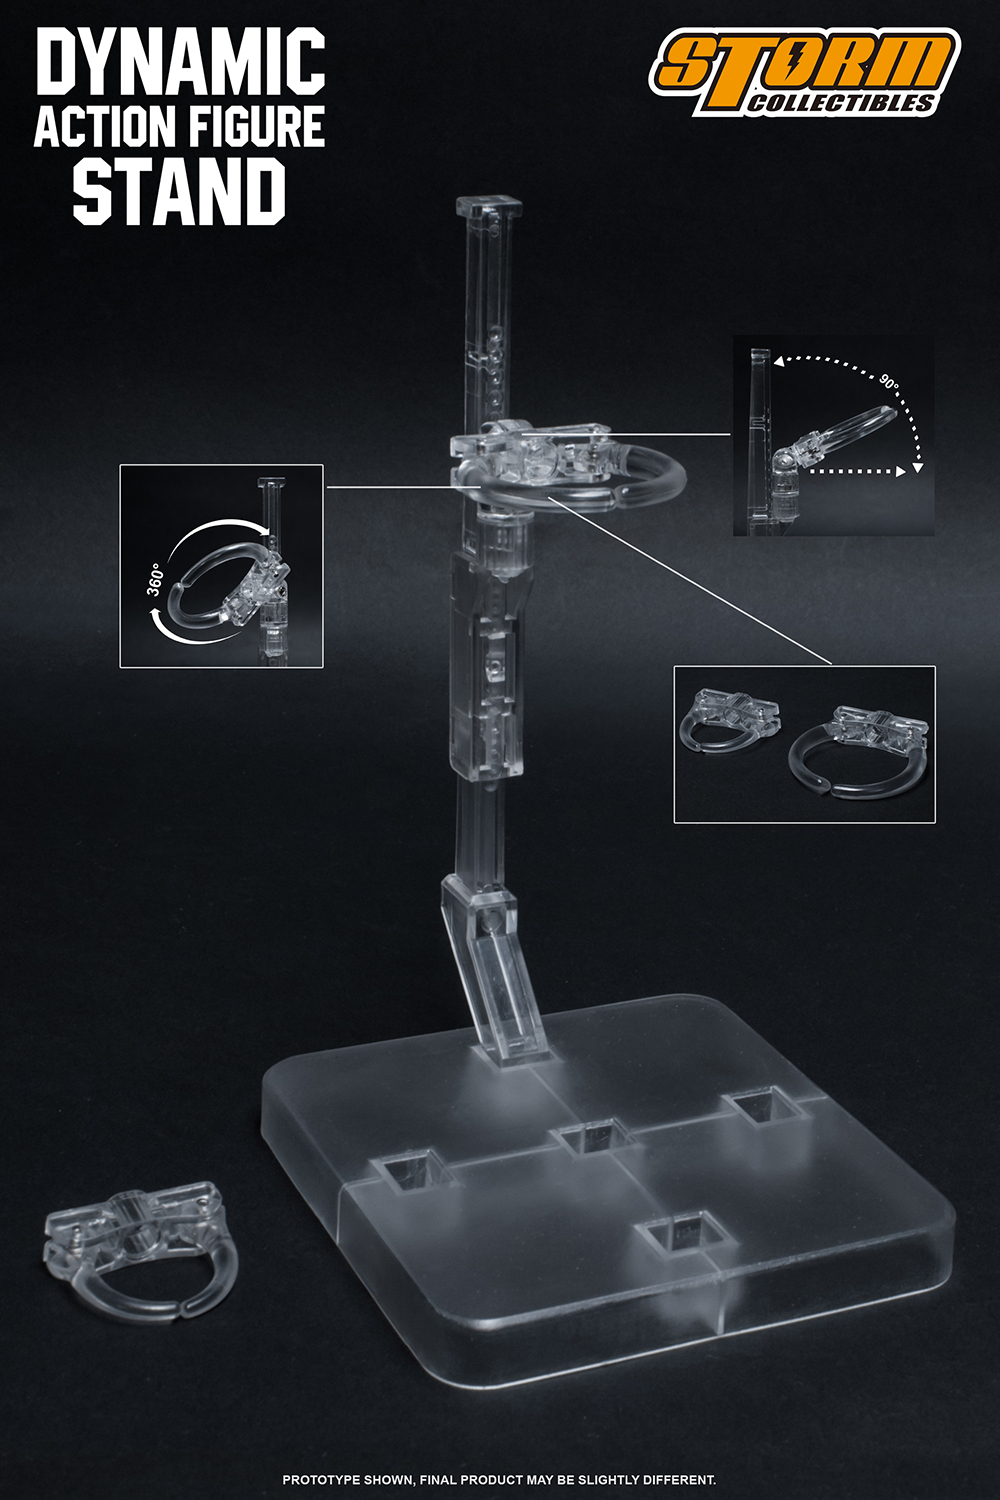 DYNAMIC ACTION ADJUSTABLE FIGURE STAND